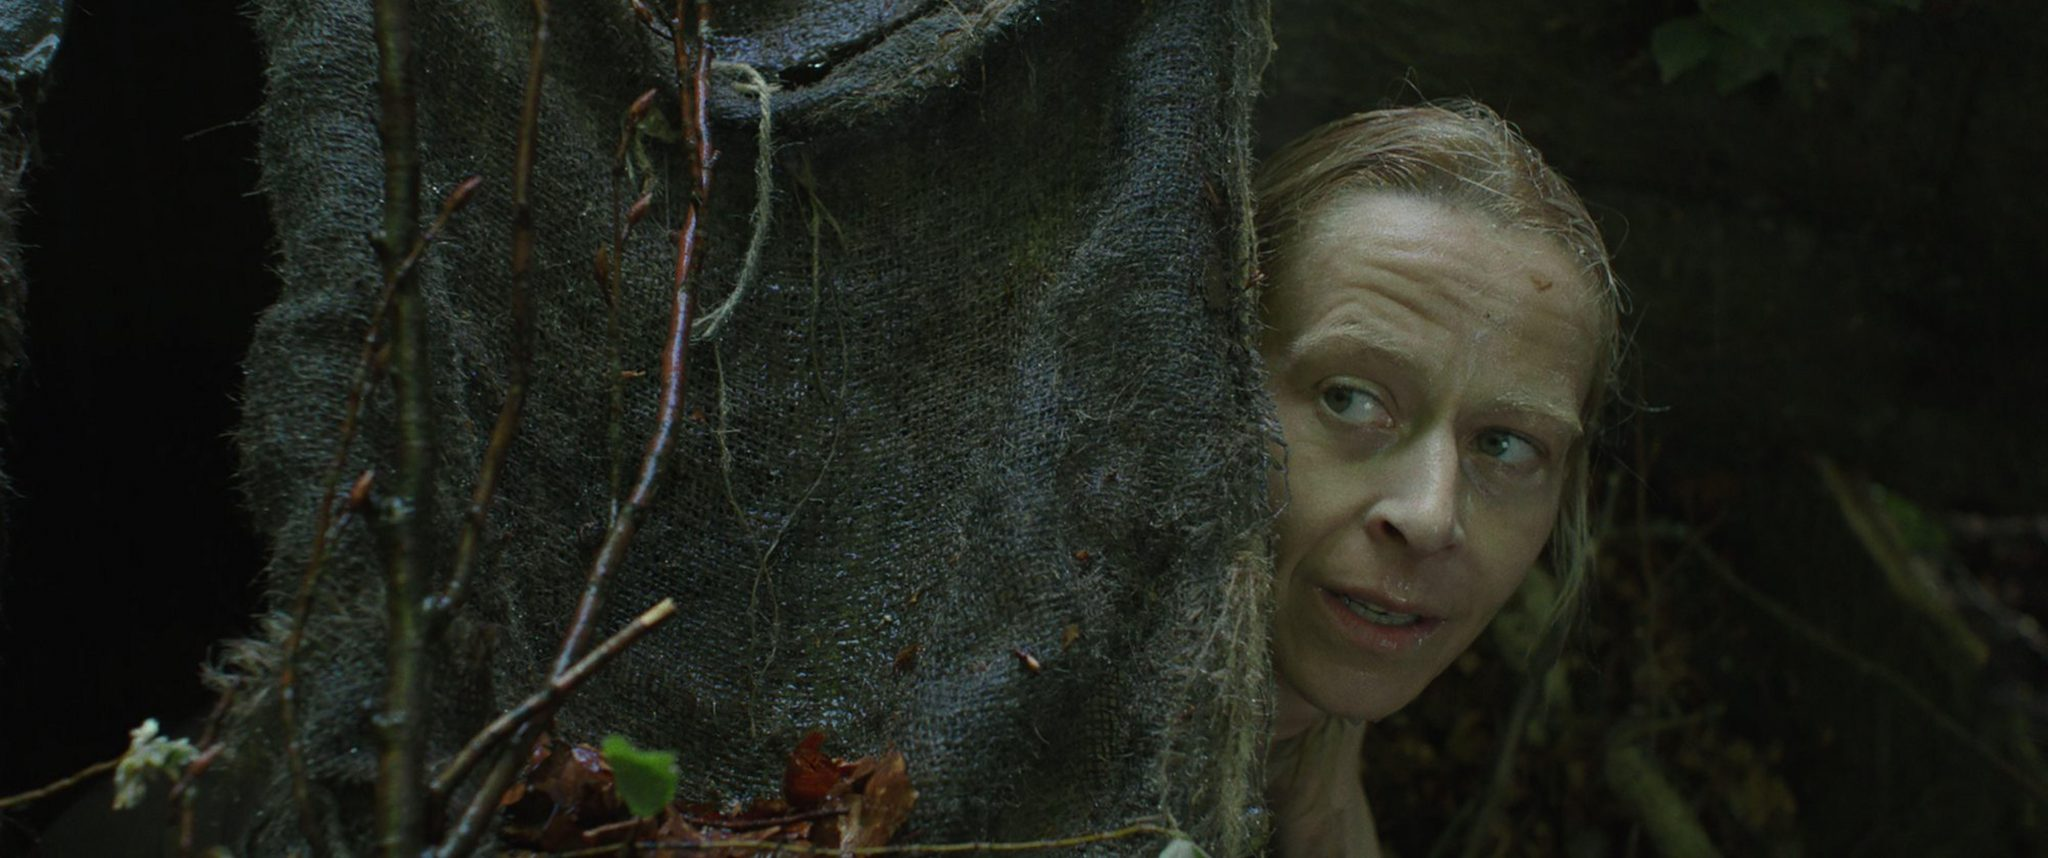 Couple in a Hole - Review